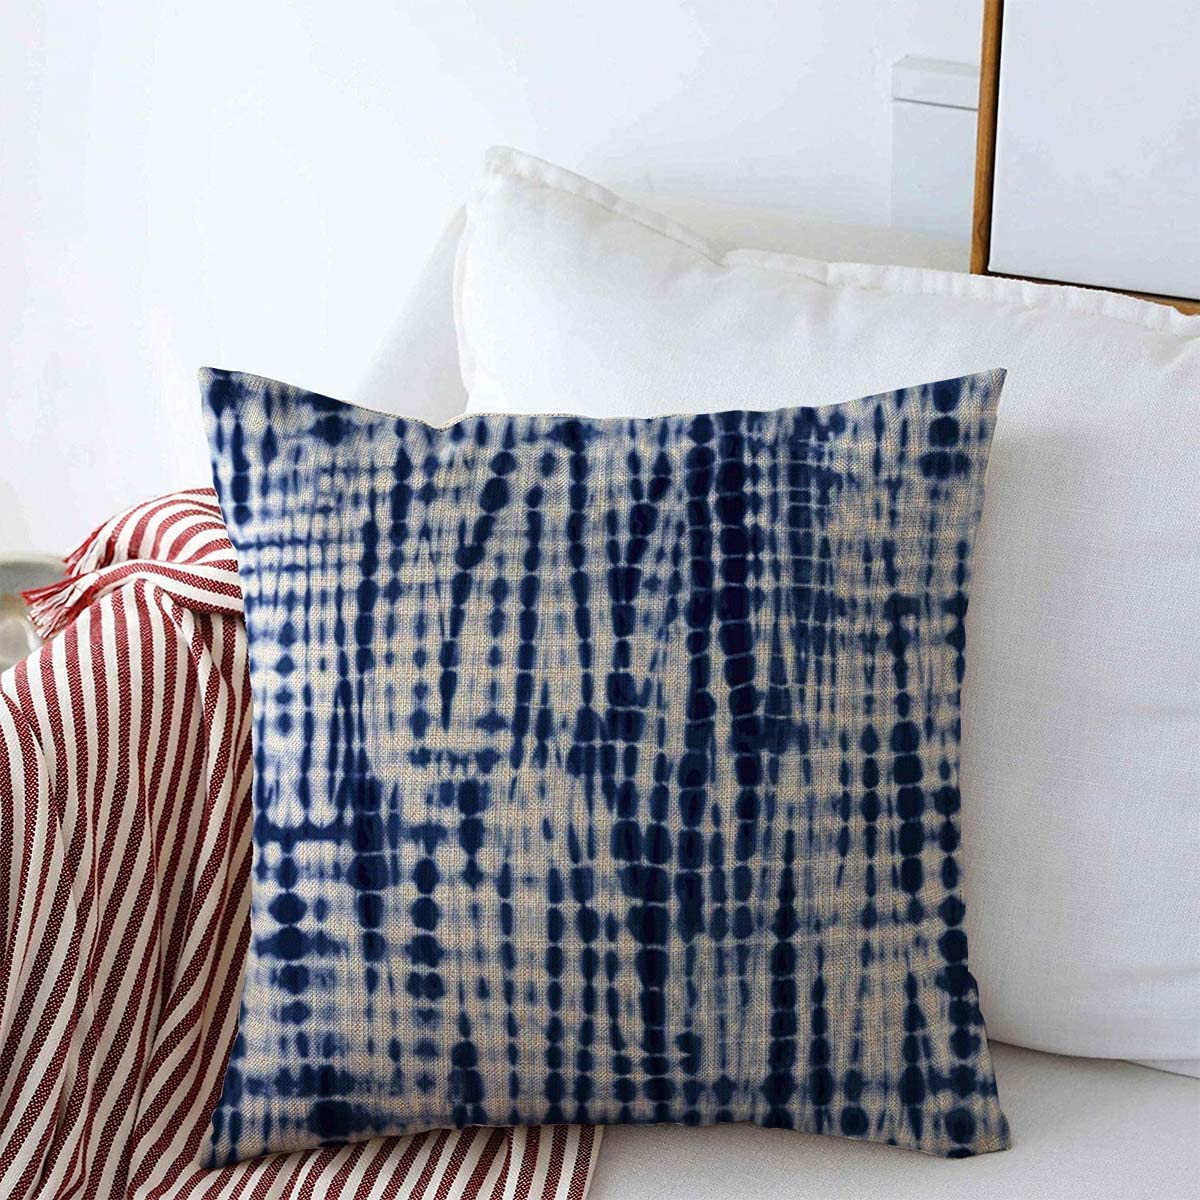 Starookc Throw Pillows Cover 18 x 18 Inches Navy Tie Indigo Blue Tiedye Pattern Abstract Dye Watercolor Batik Old Dyed Ink White Dipped Artistic Cushion Case Cotton Linen for Fall Home Decor